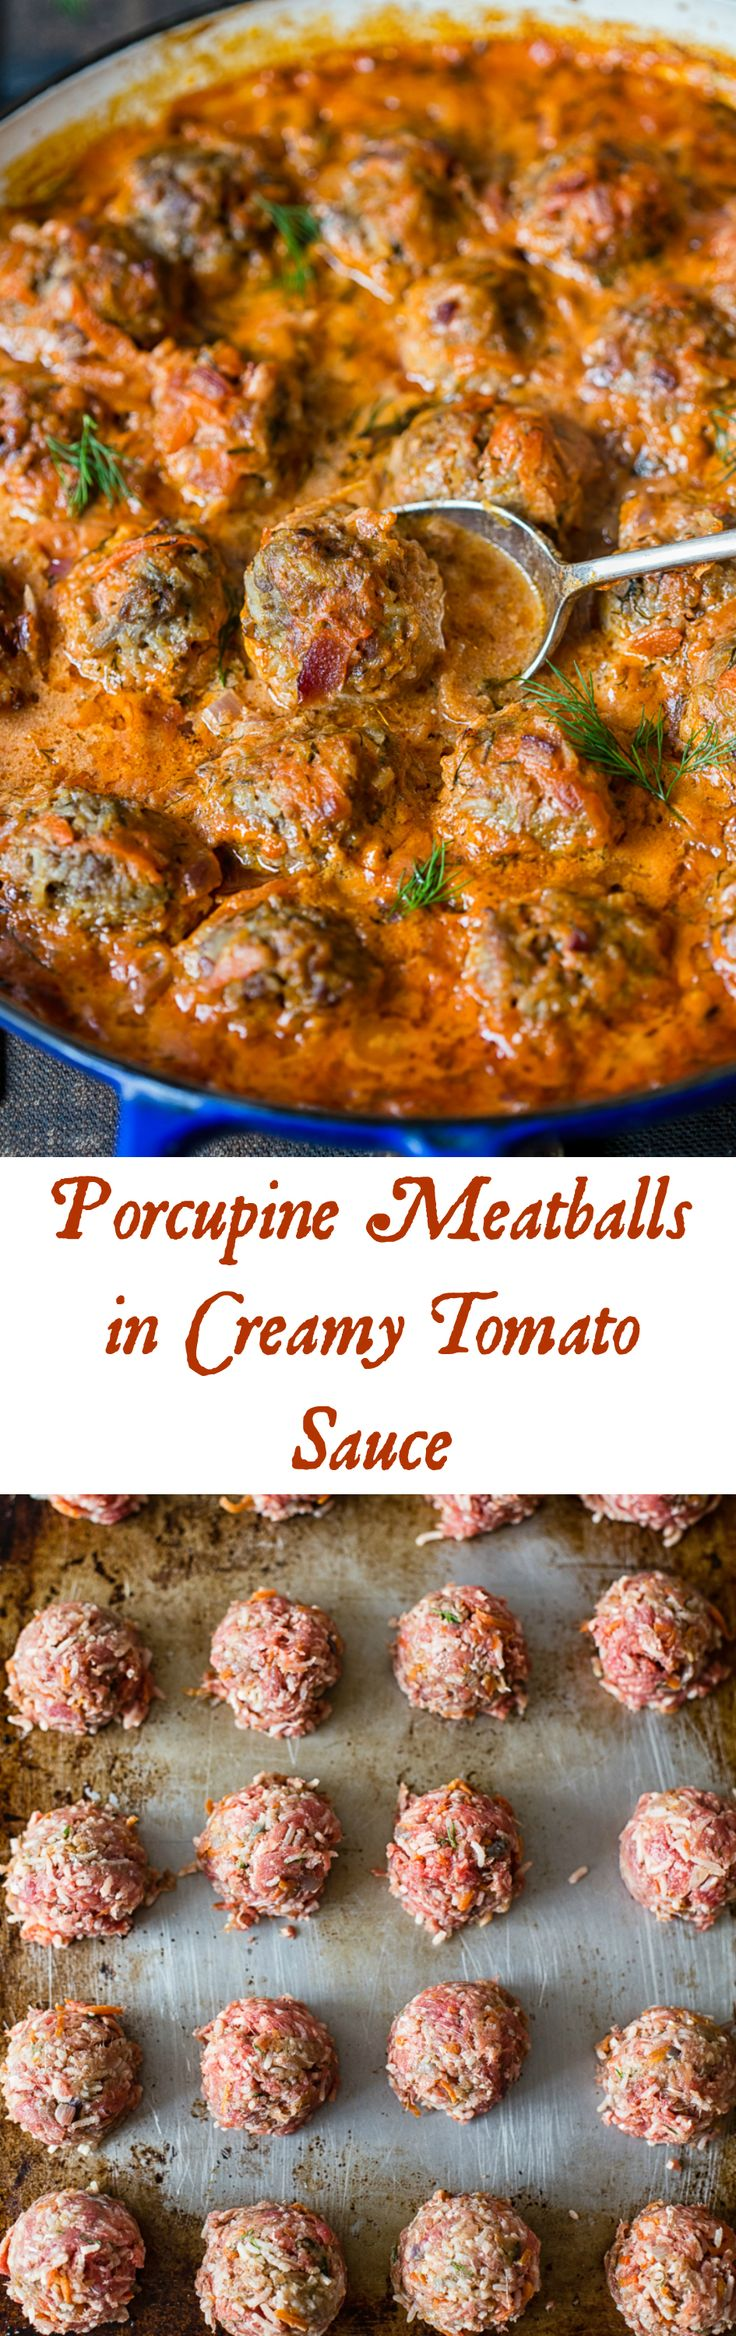 These porcupine meatballs baked in rich sour cream and tomato sauce are a perfect mix of deliciousness and nostalgia! Your family will love them! (Paleo Pasta Ground Turkey)